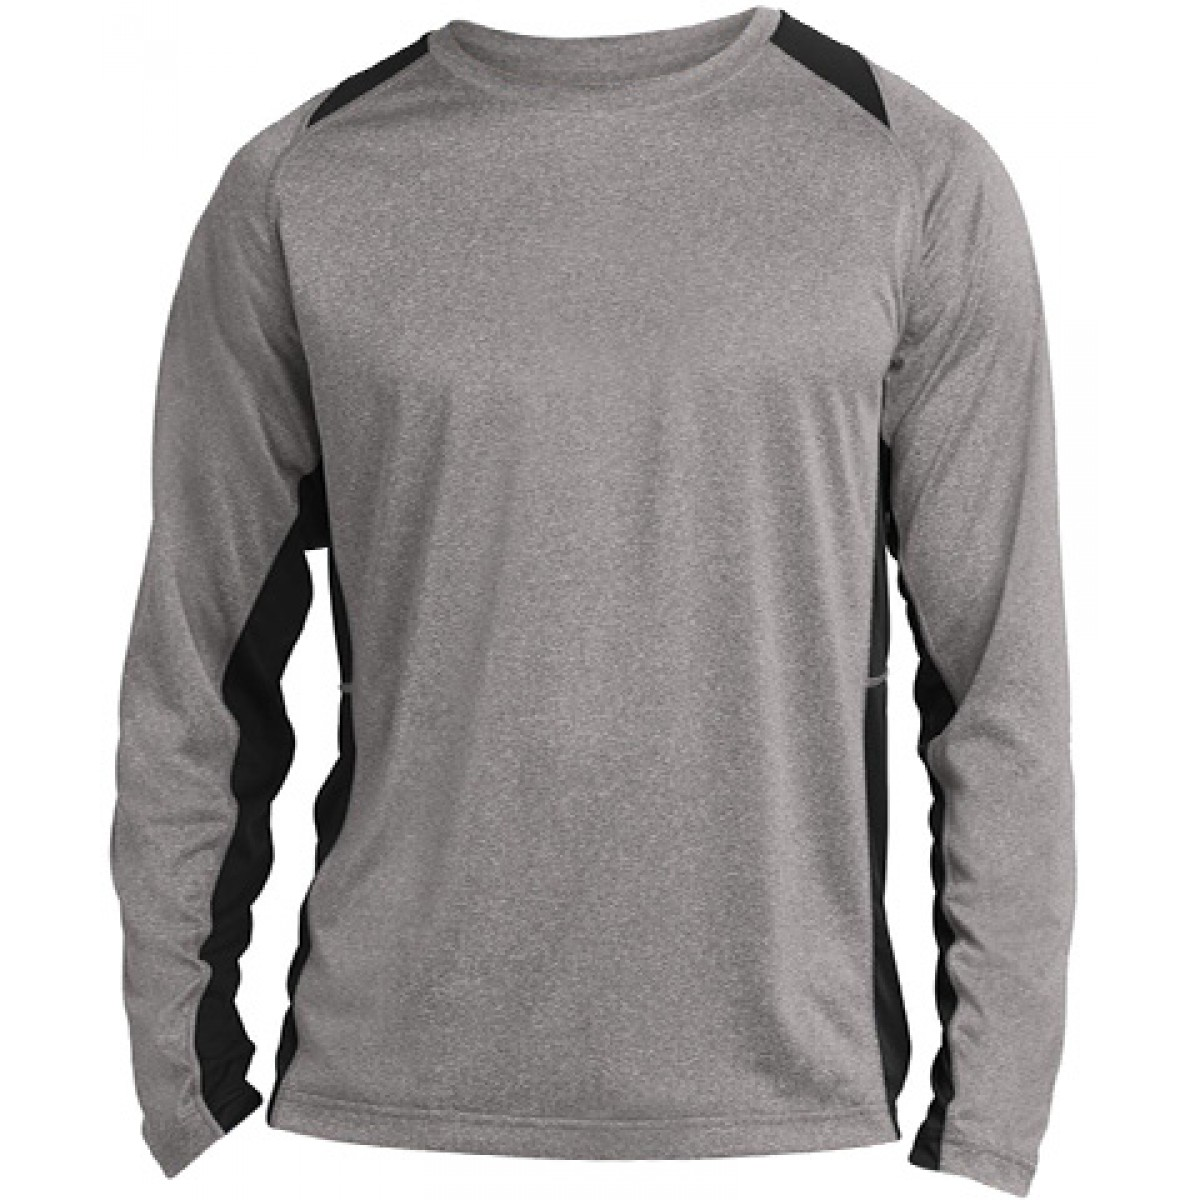 Long Sleeve Heather Colorblock Contender-Gray/Black-2XL